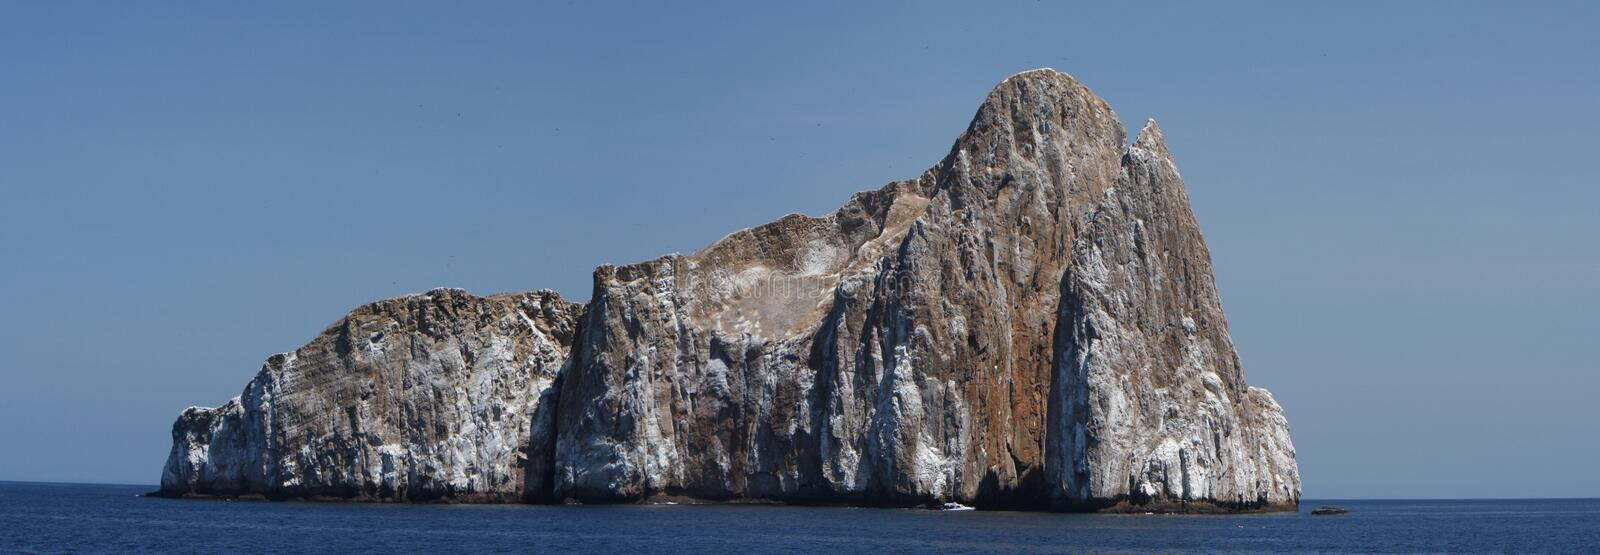 Download Panorama Of Sleeping Lion Rock In Galapagos Stock Image - Image: 12527109